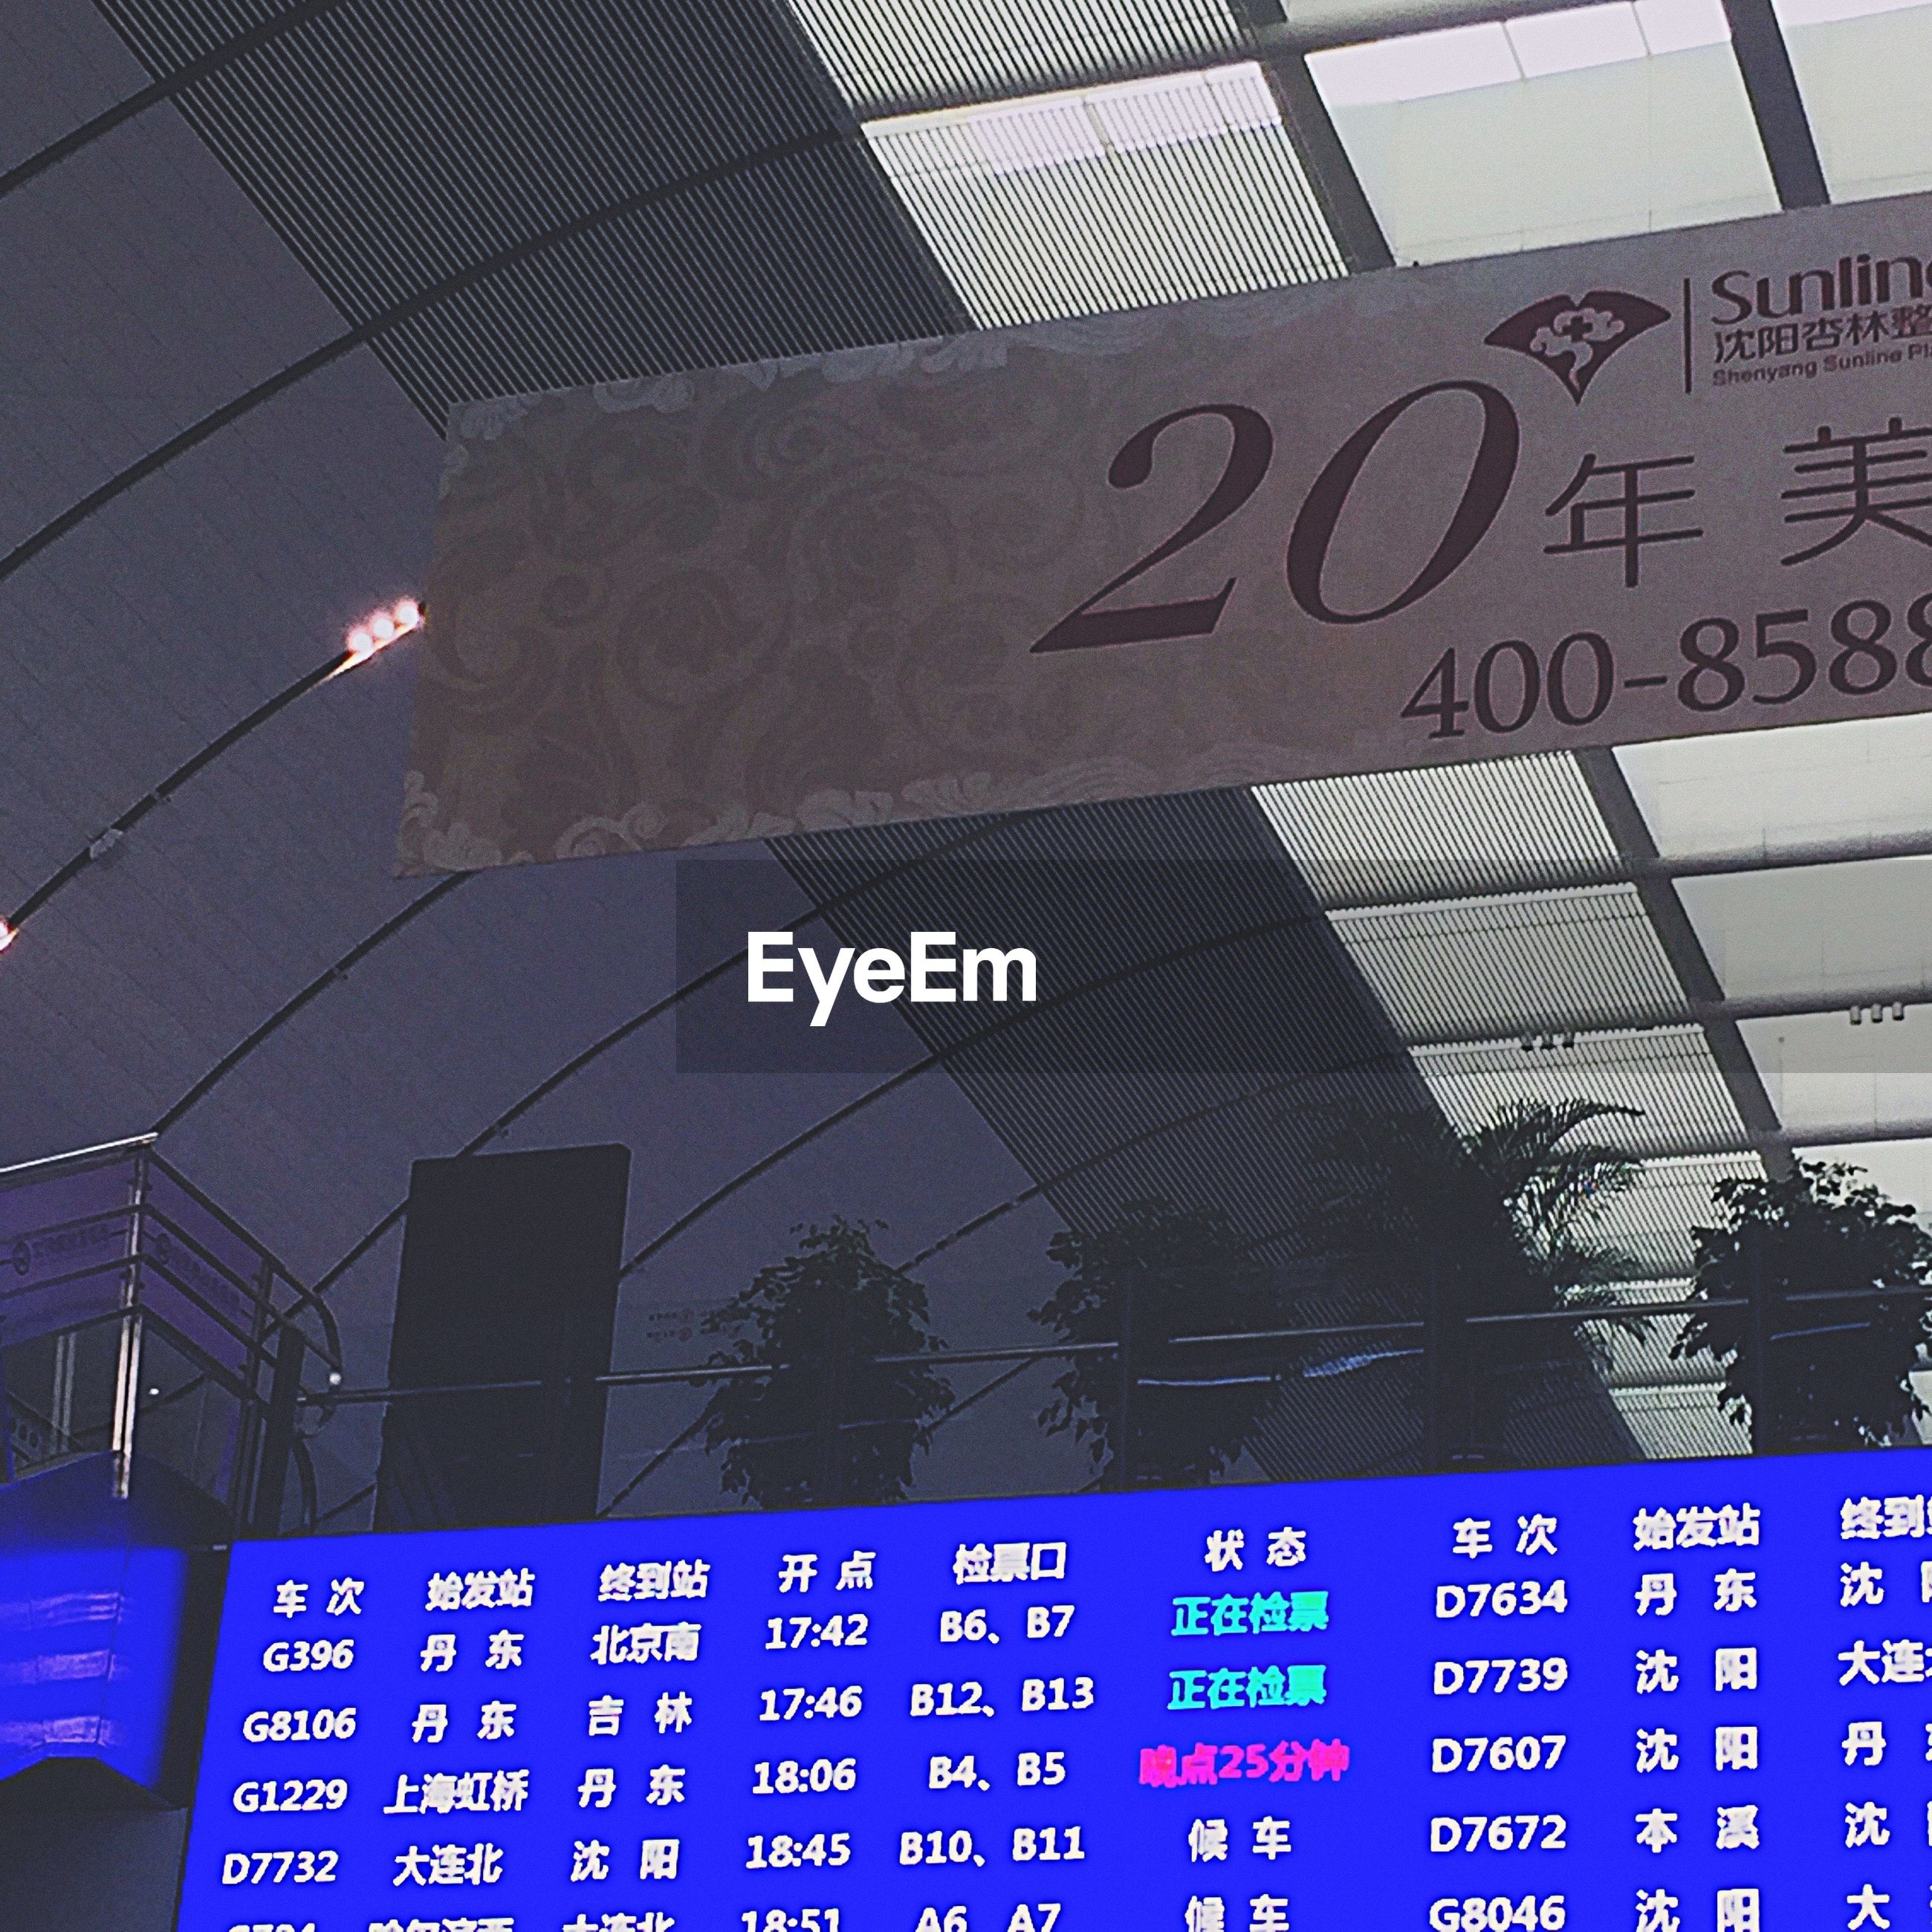 text, western script, communication, capital letter, information, non-western script, number, information sign, sign, guidance, low angle view, indoors, illuminated, arrow symbol, directional sign, no people, city, commercial sign, direction, built structure